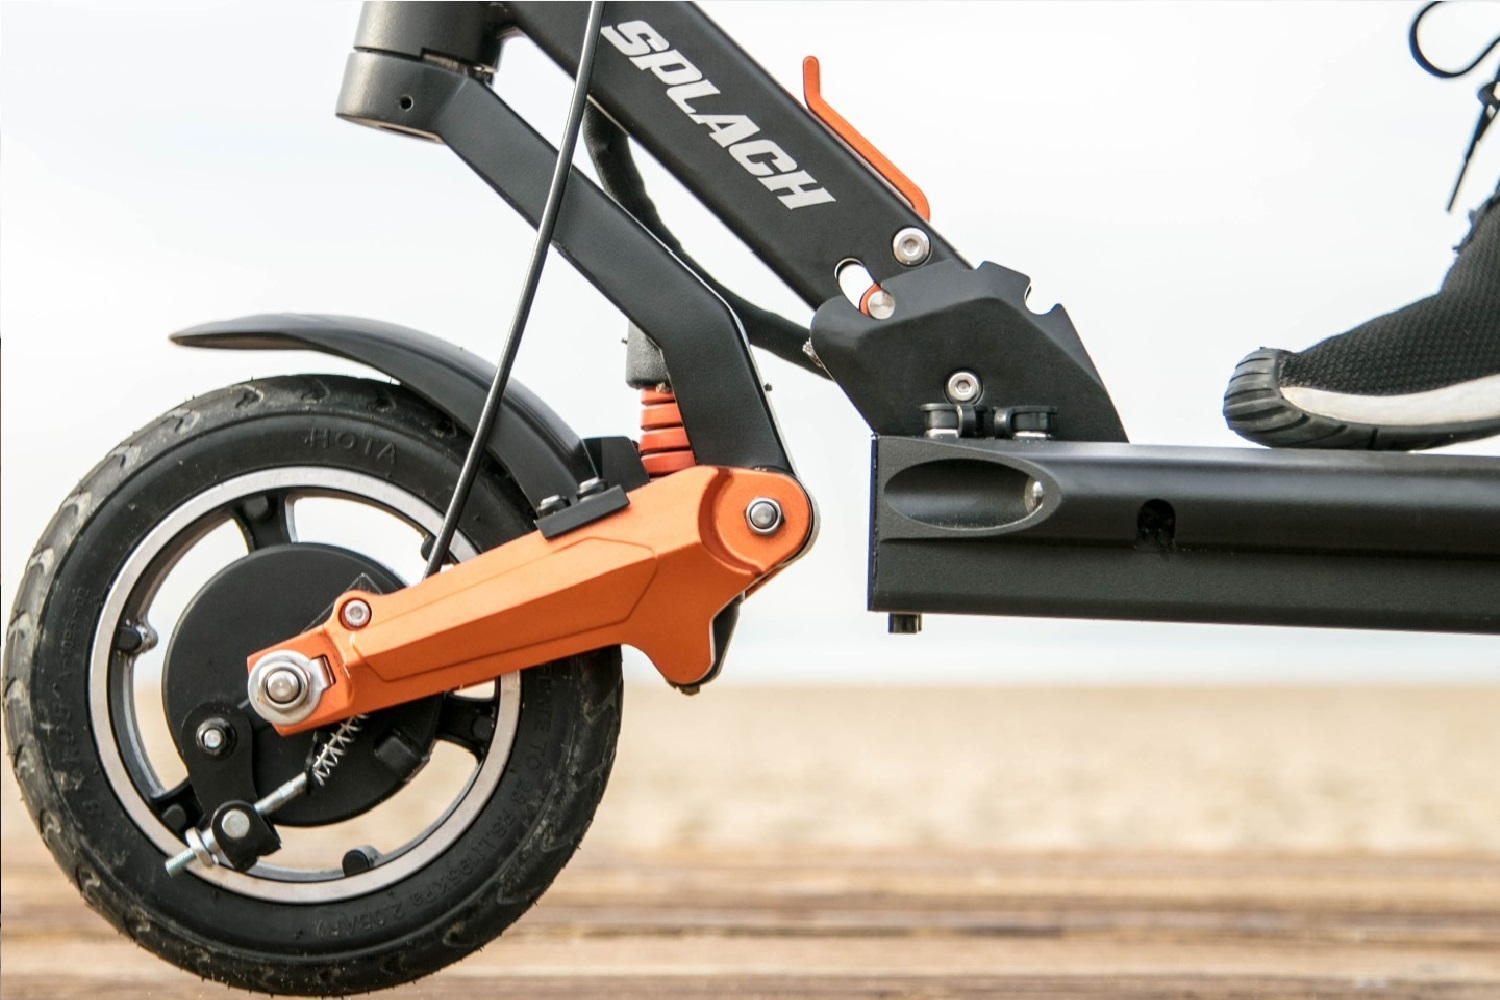 Offroad eScooter suspension